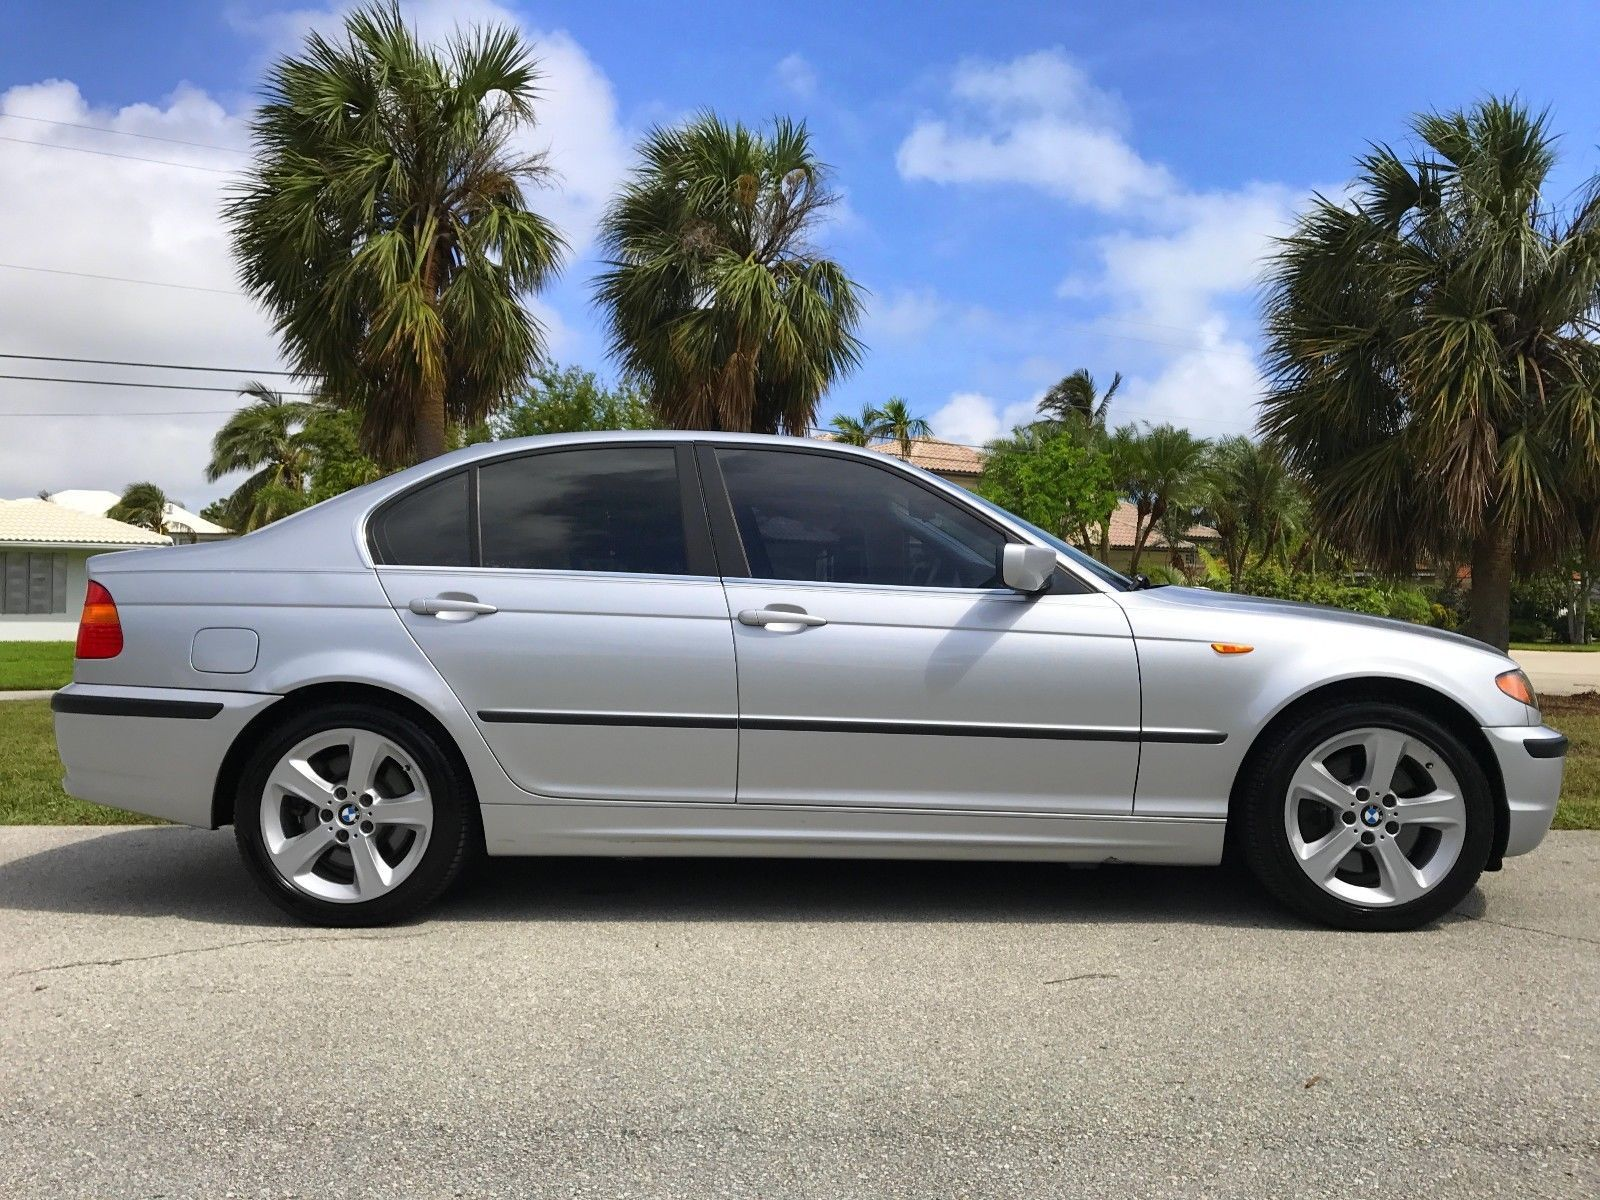 hight resolution of nice awesome 2004 bmw 3 series 330xi awd florida car sunroof new tires 2004 bmw 330xi awd sunroof premium pkg not 325i 325xi 328i 328xi 330i